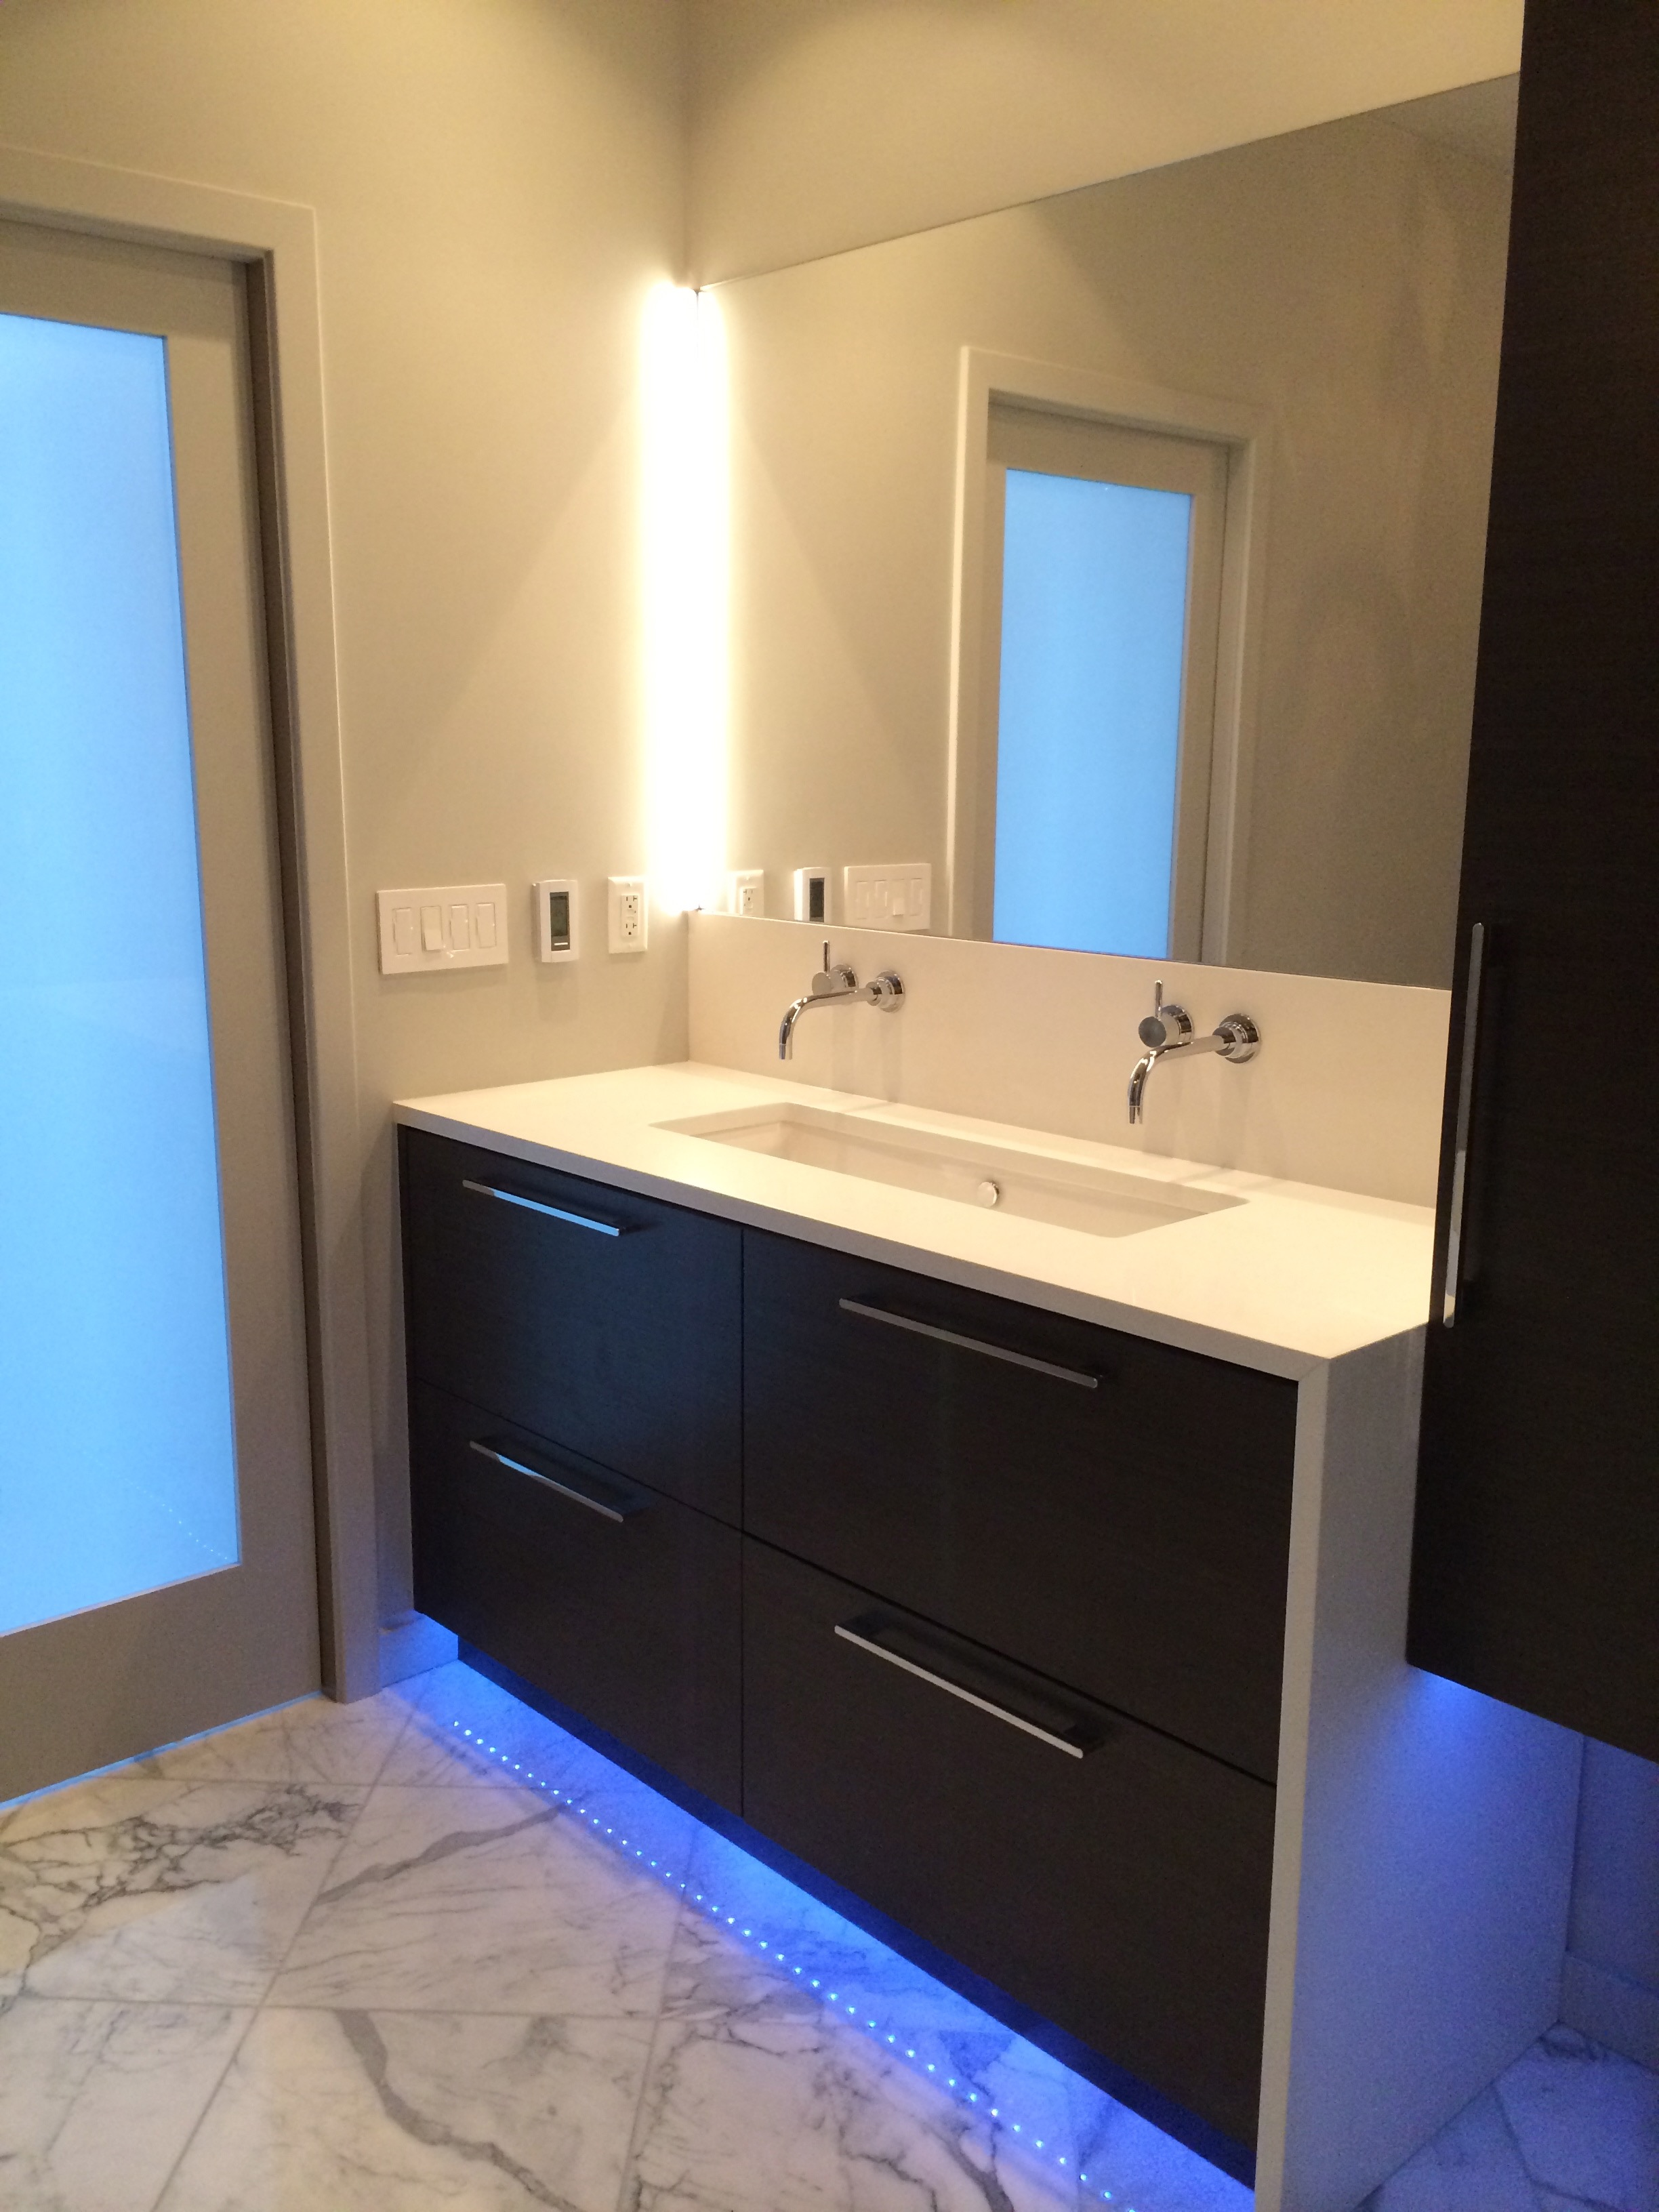 Led Under Cabinet Lighting For Contemporary Bathroom (View 5 of 19)